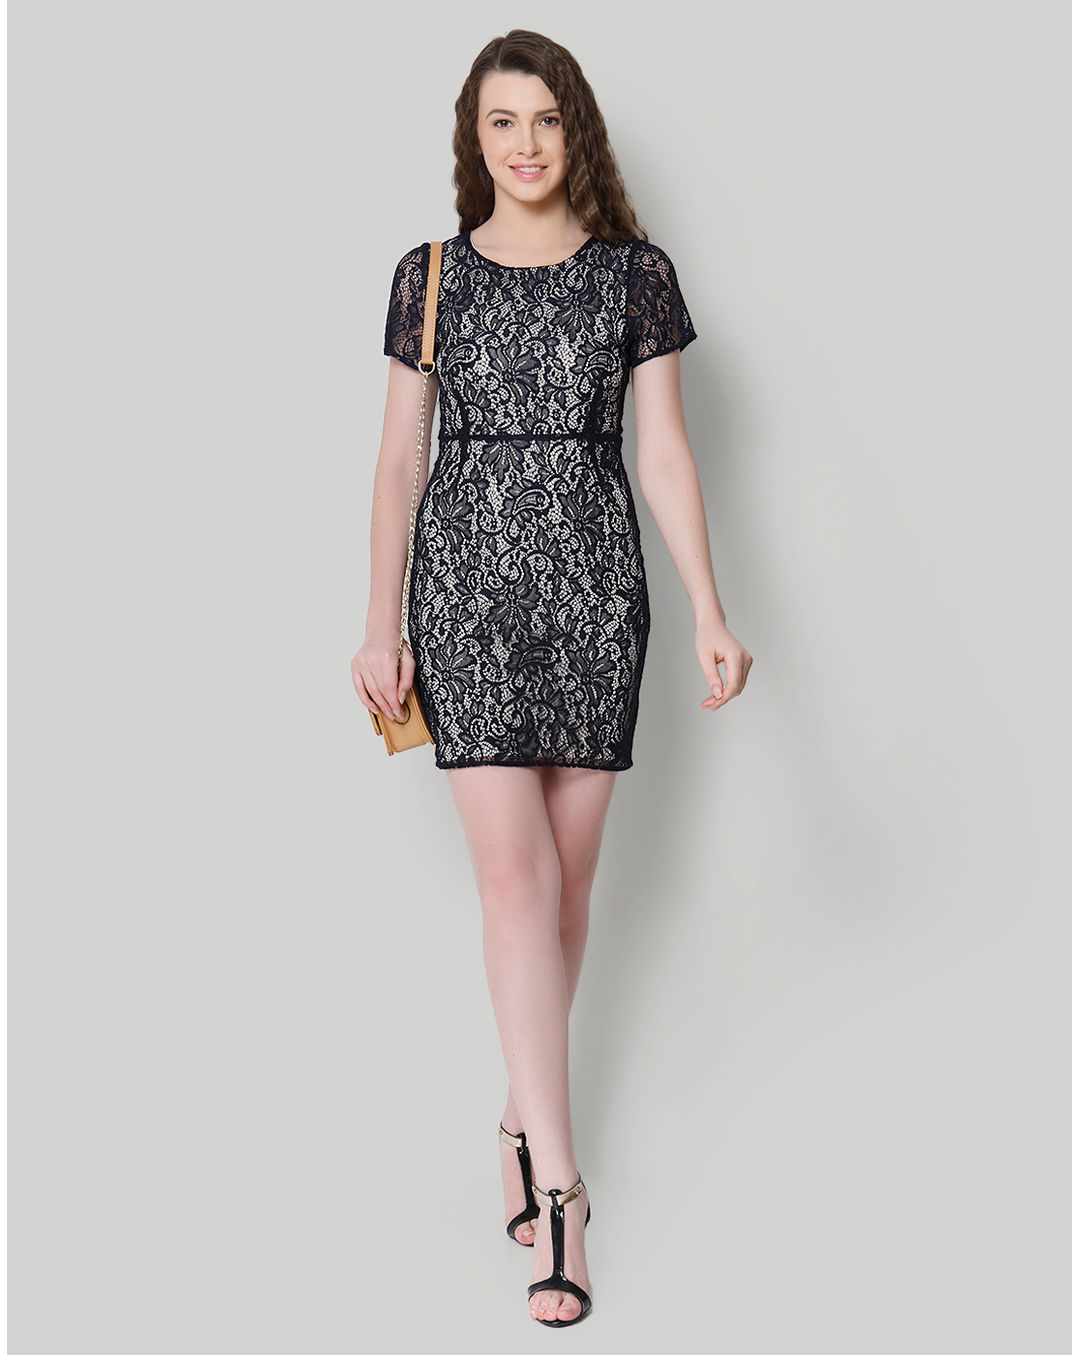 Buy Only Black Lace Bodycon Dress Online Only